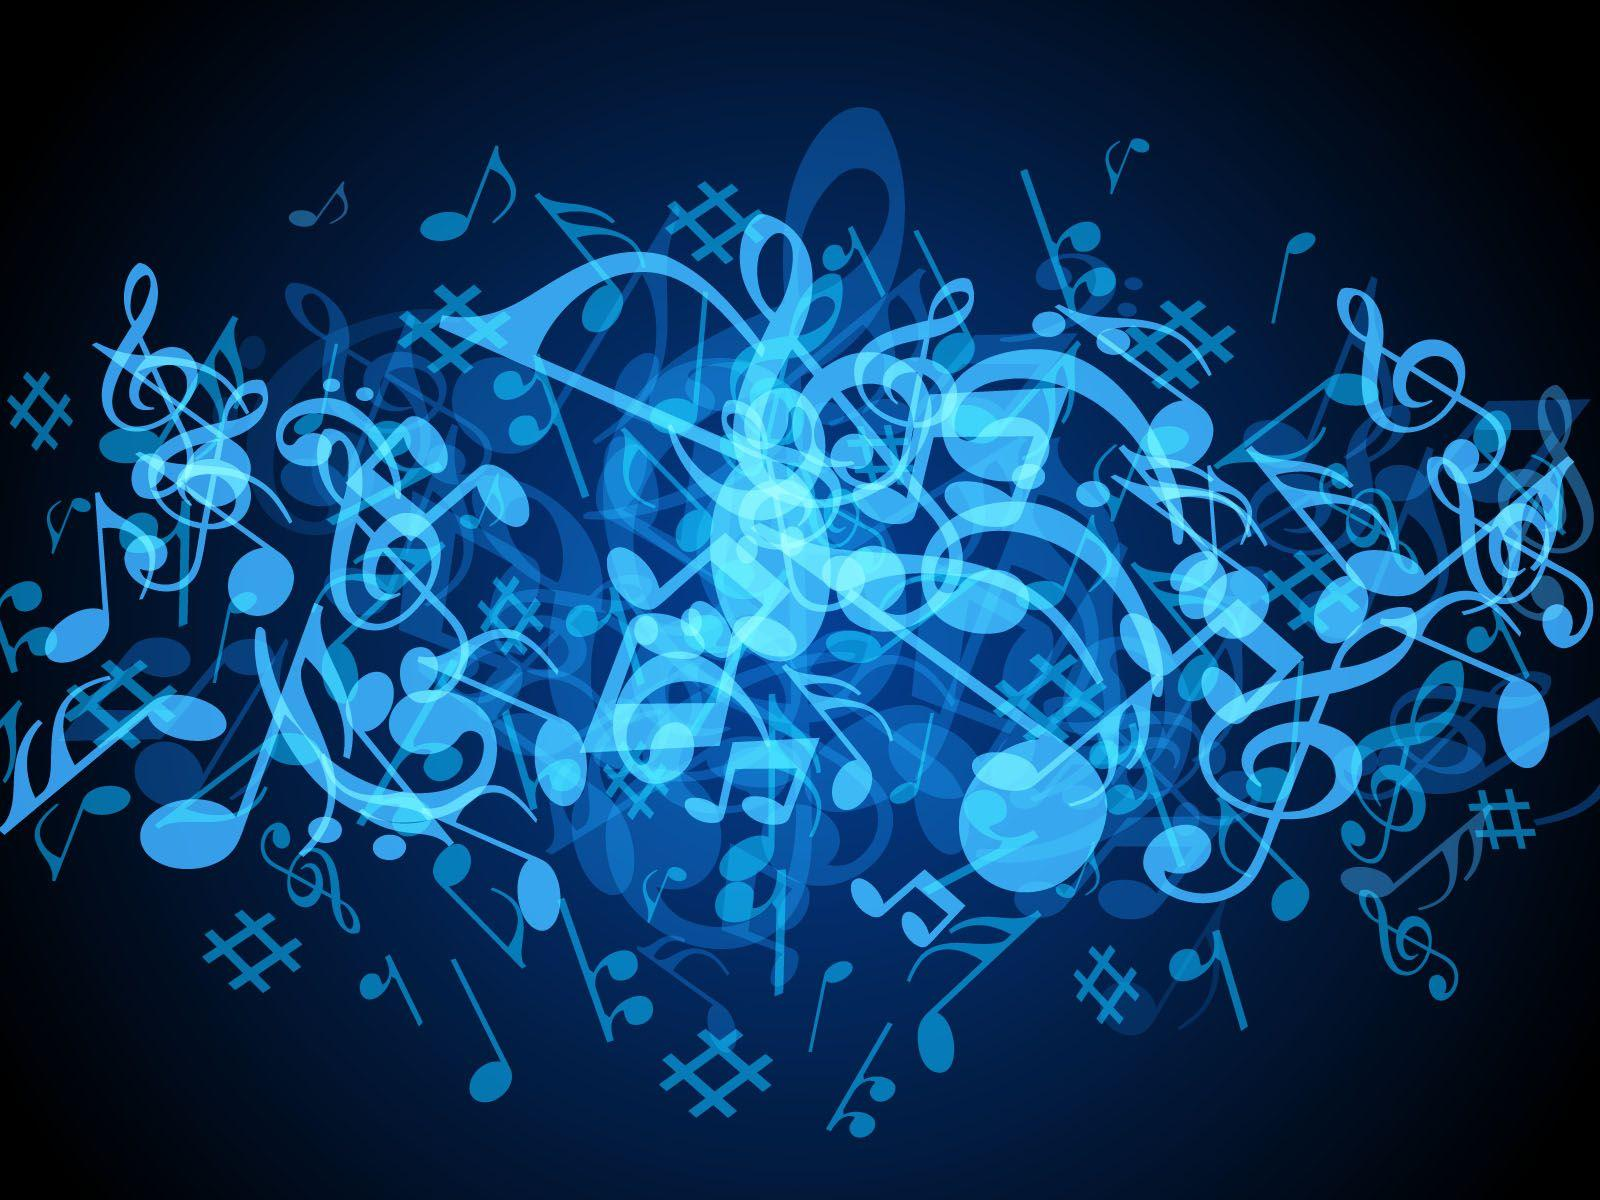 Music Notes Backgrounds: Blue Music Wallpapers